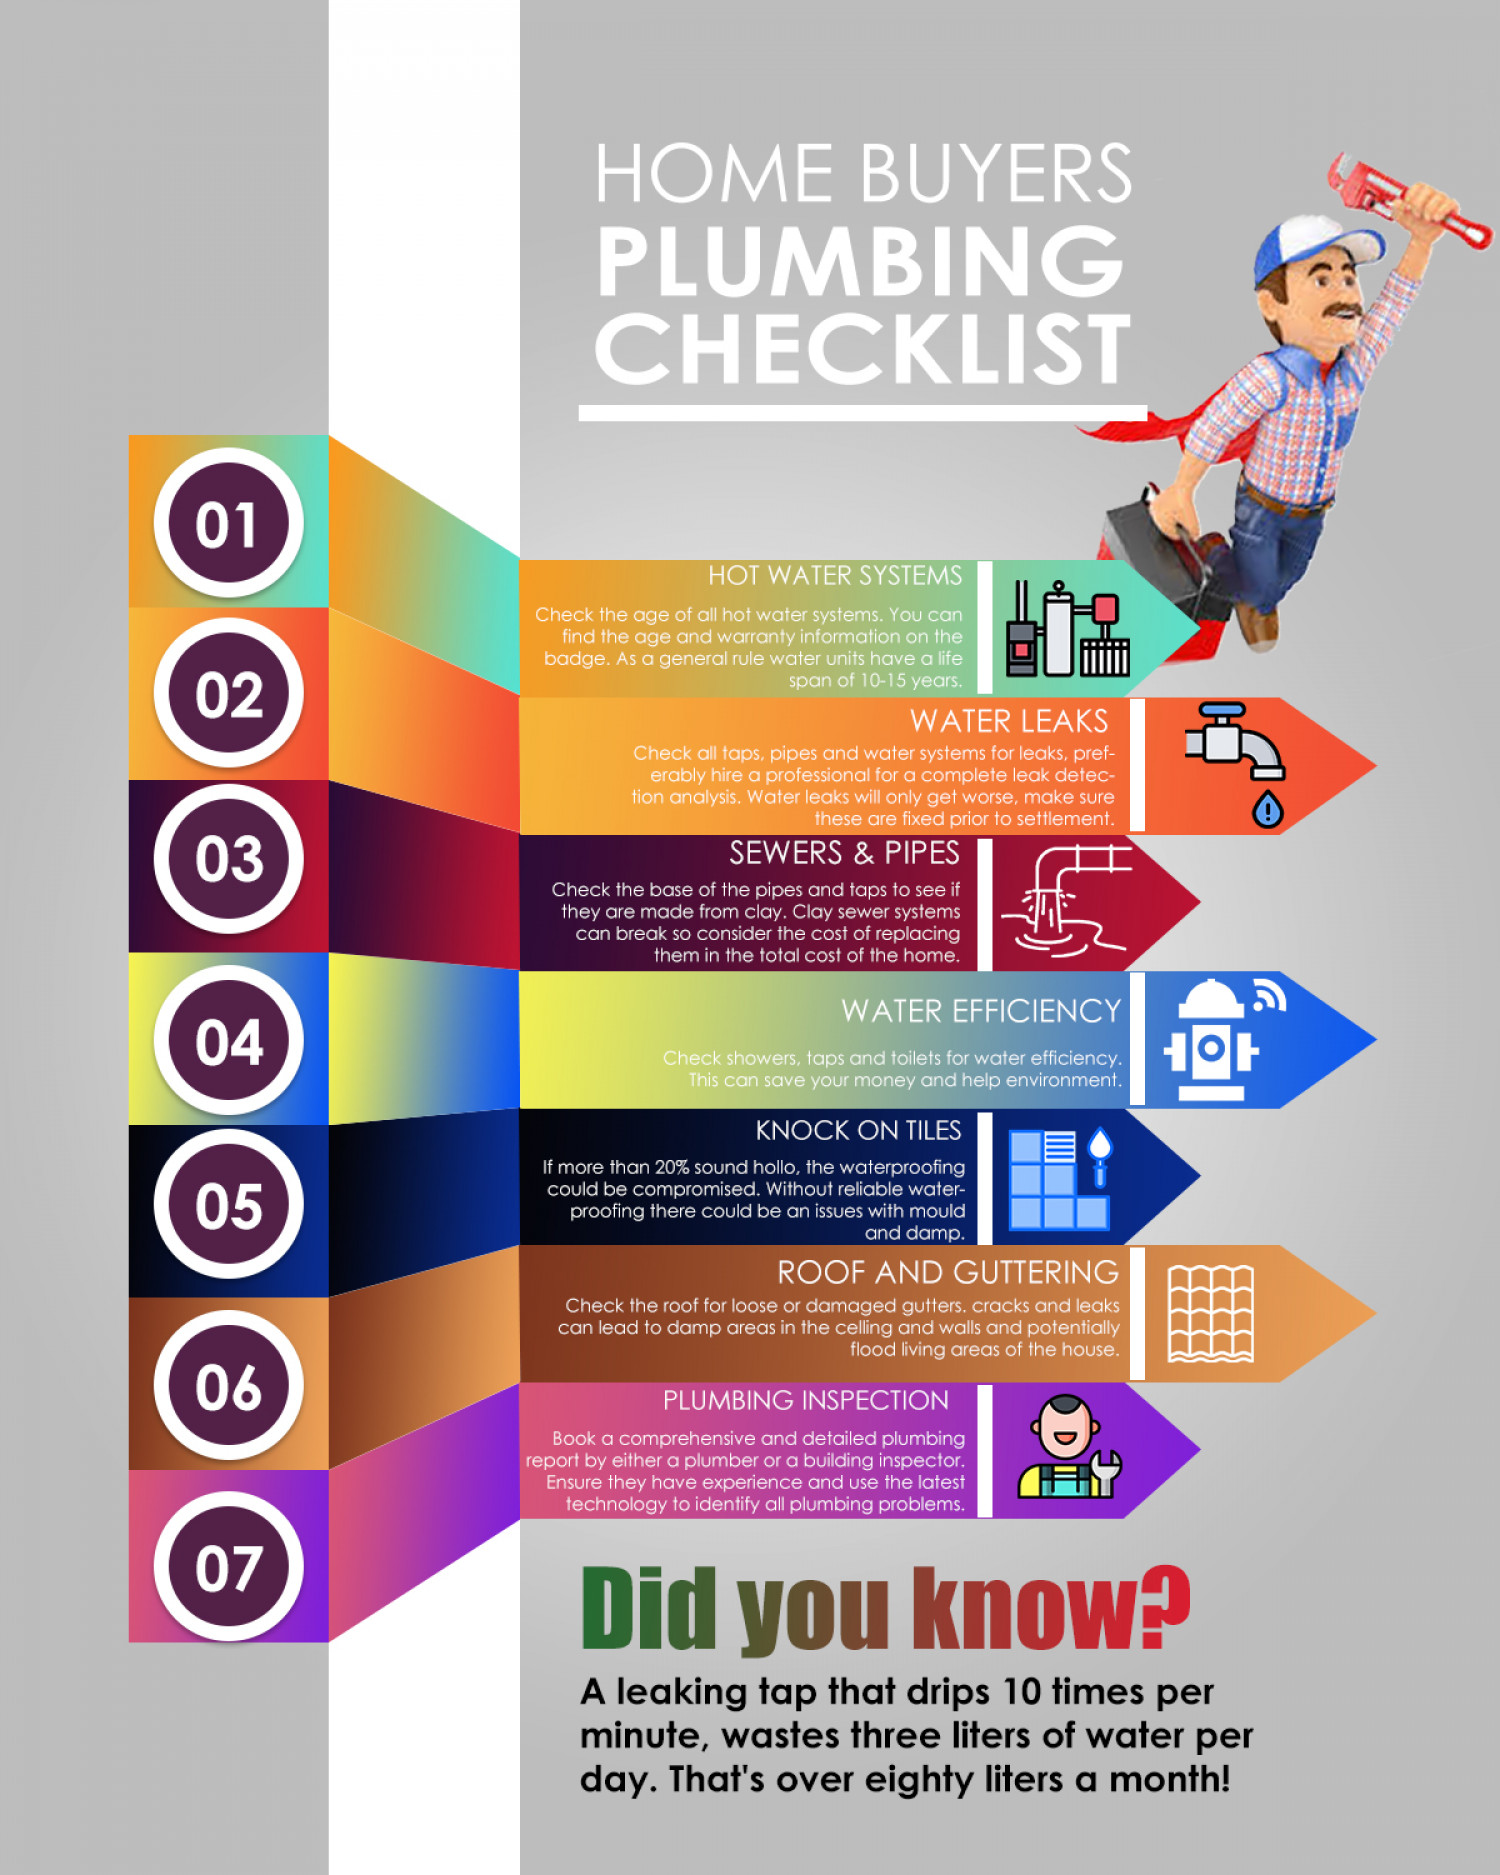 Home Buyers Plumbing Checklist by Eagle Service Company Infographic